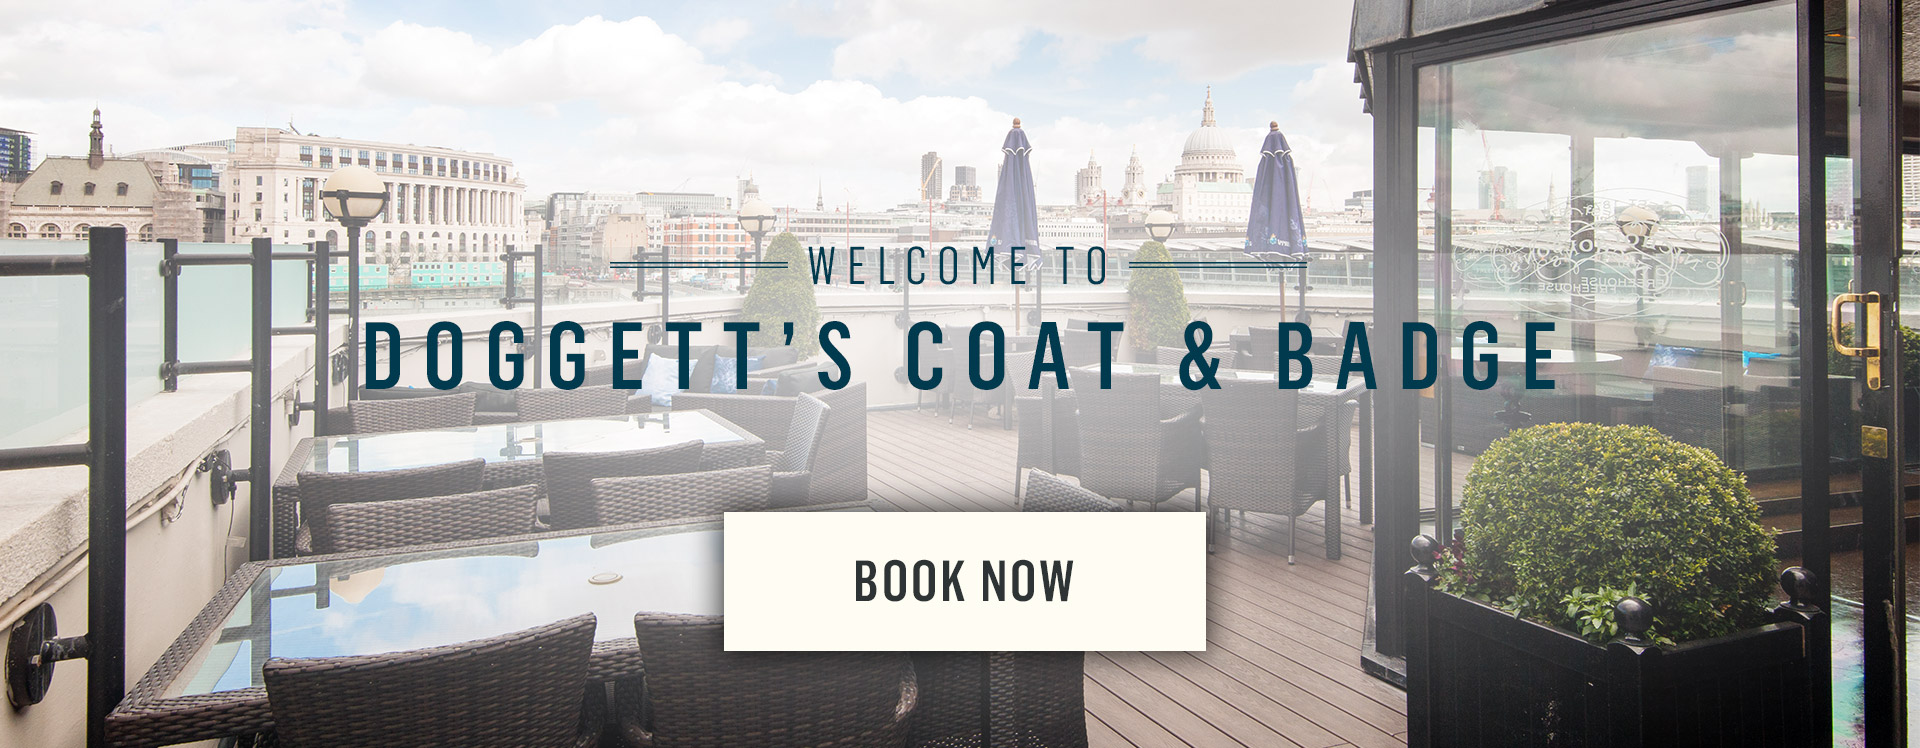 Welcome to Doggett's Coat and Badge - Book Now